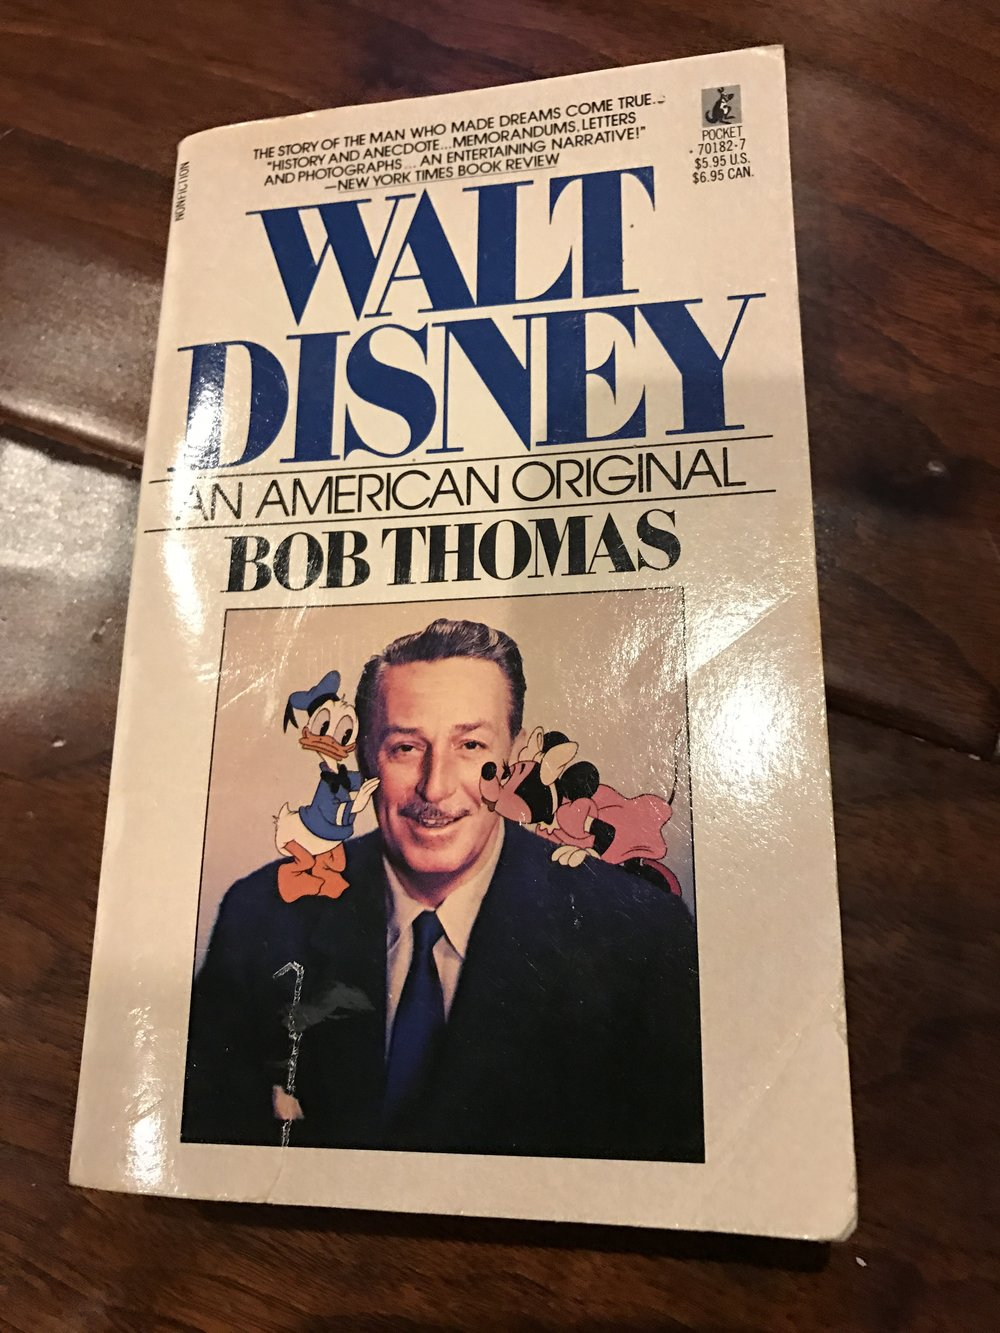 1976 version - Walt Disney, An American Original